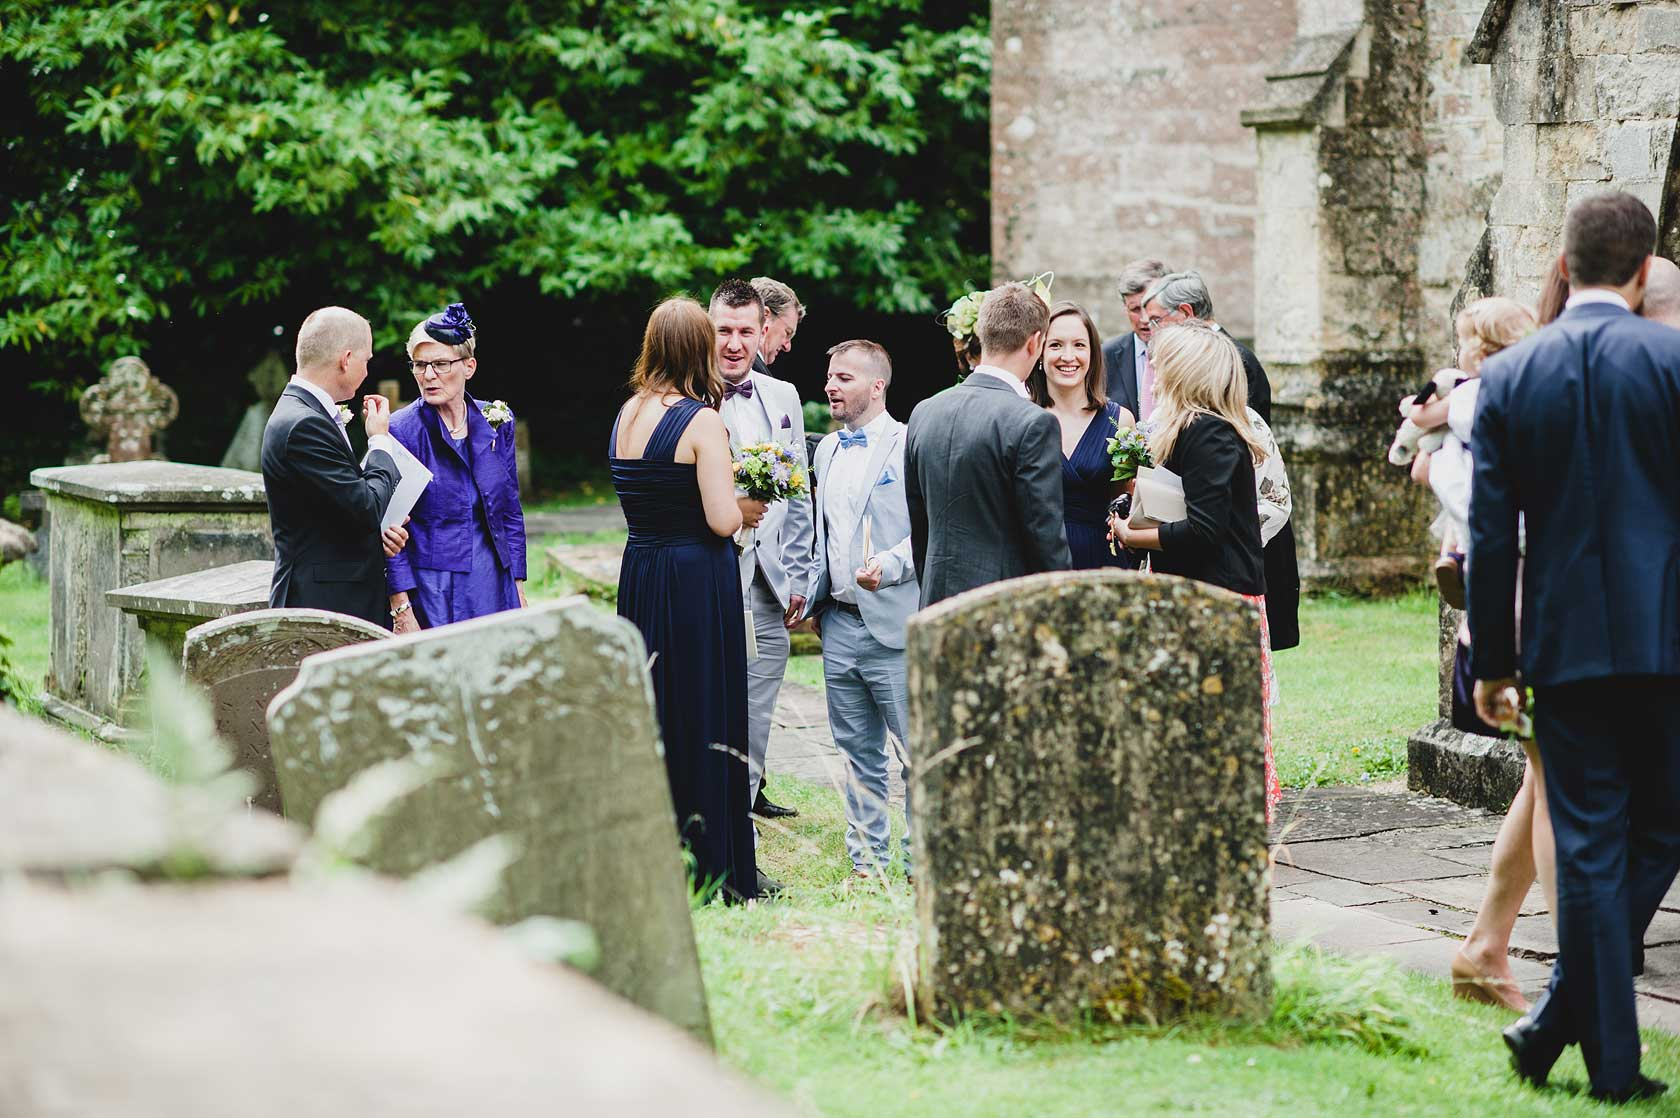 Reportage Wedding Photography at Manor House Hotel